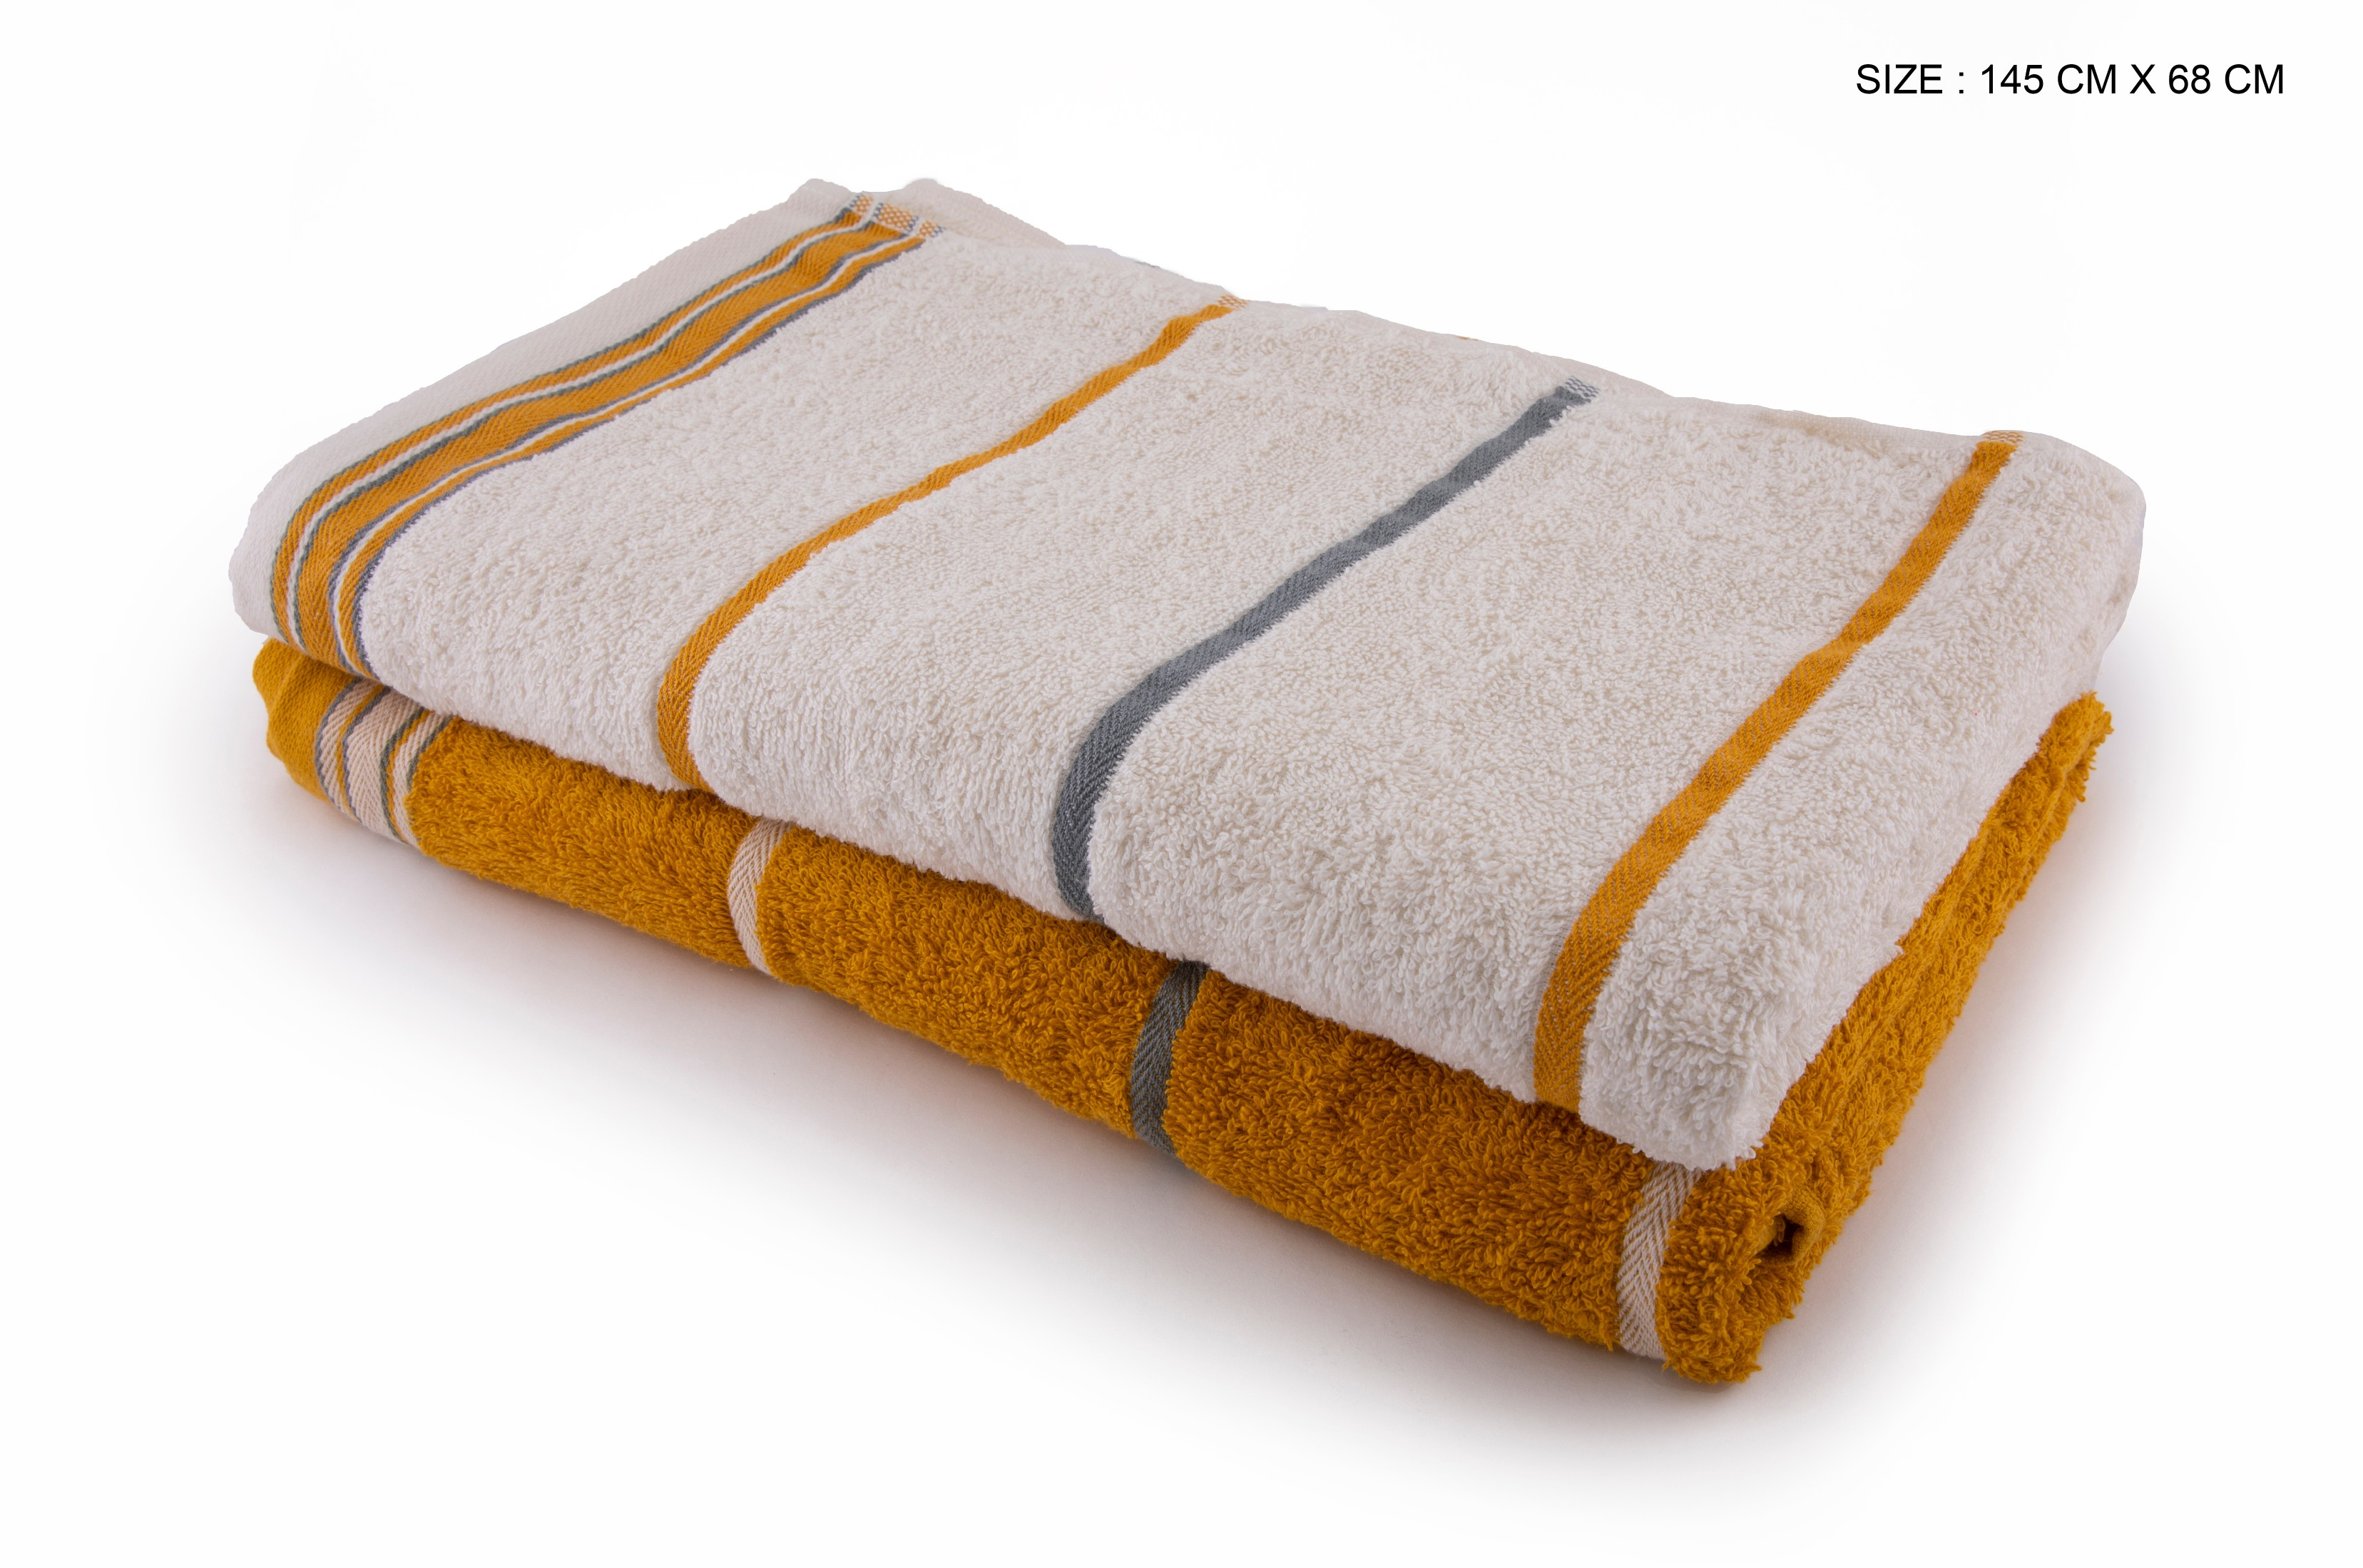 Living Essence Emilia Off White Gold Set Of 2 Terry Towels Cotton Towel Sets in Off White Gold Colour by HomeTown